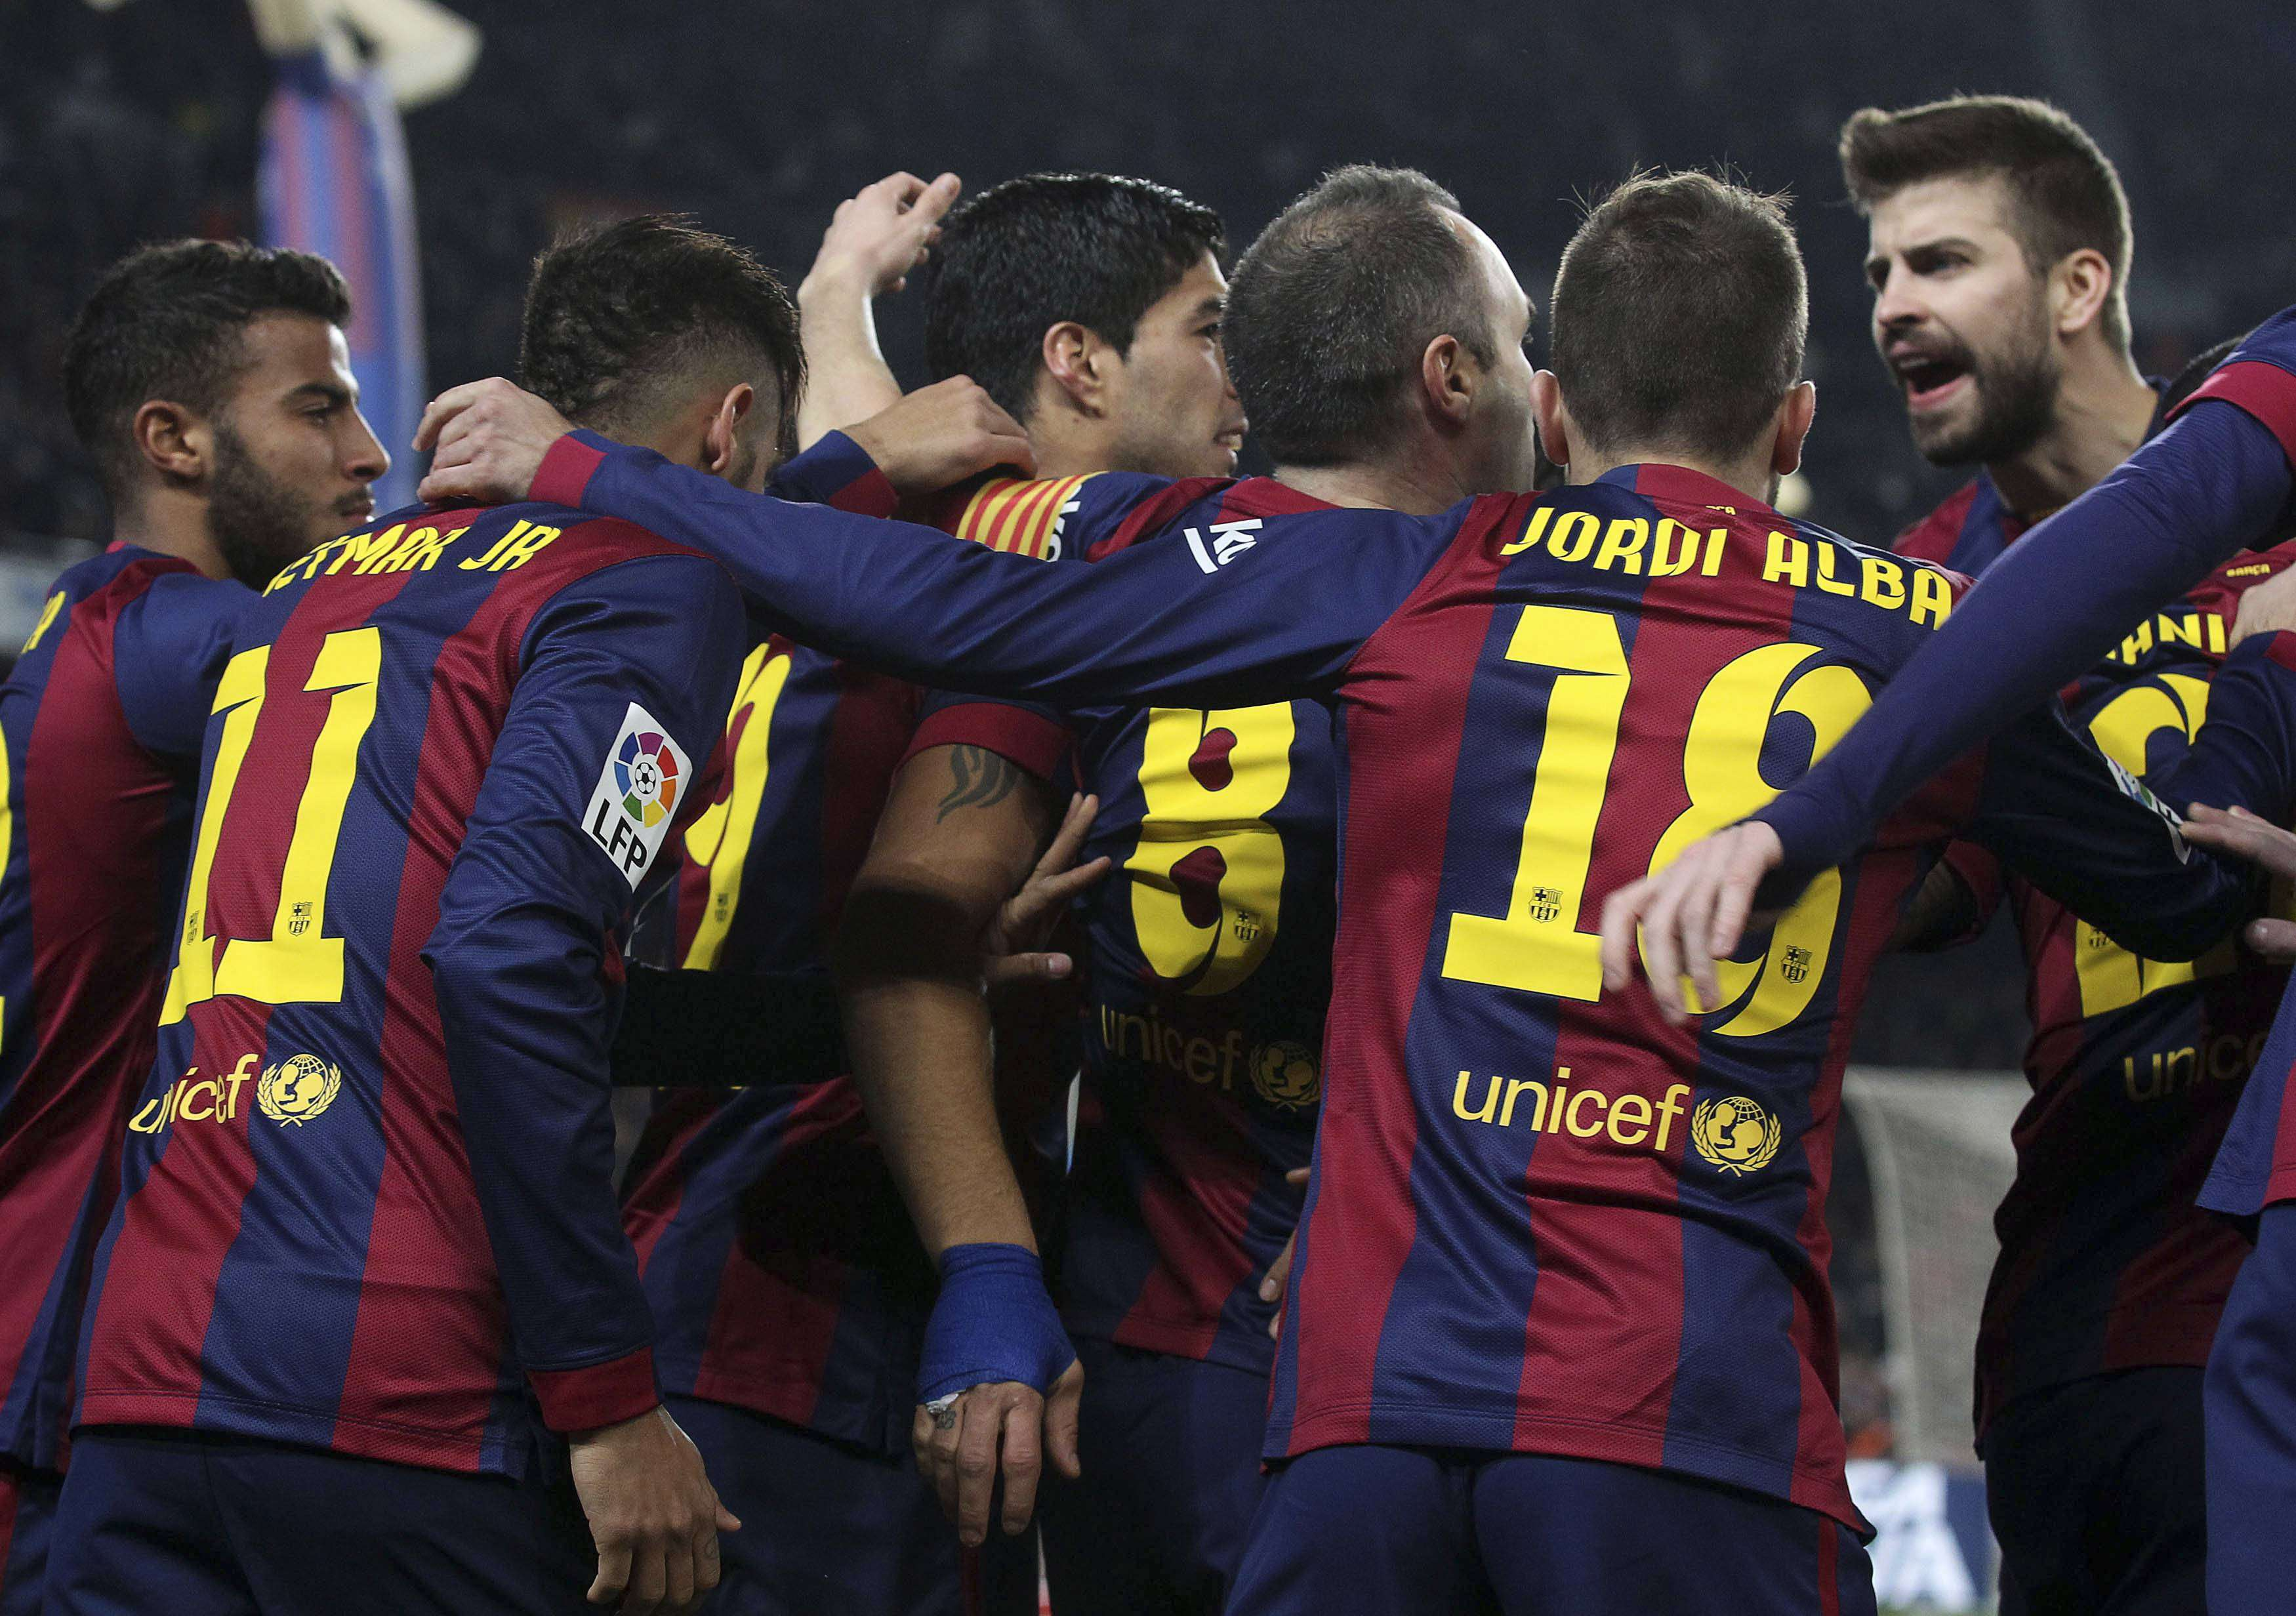 Barcelona's players celebrate Andres Iniesta's goal against Villarreal during their King's Cup semi-finals first leg soccer match at Nou Camp stadium in Barcelona February 11, 2015. REUTERS/Gustau Nacarino (SPAIN - Tags: SPORT SOCCER) Foto: GUSTAU NACARINO/REUTERS